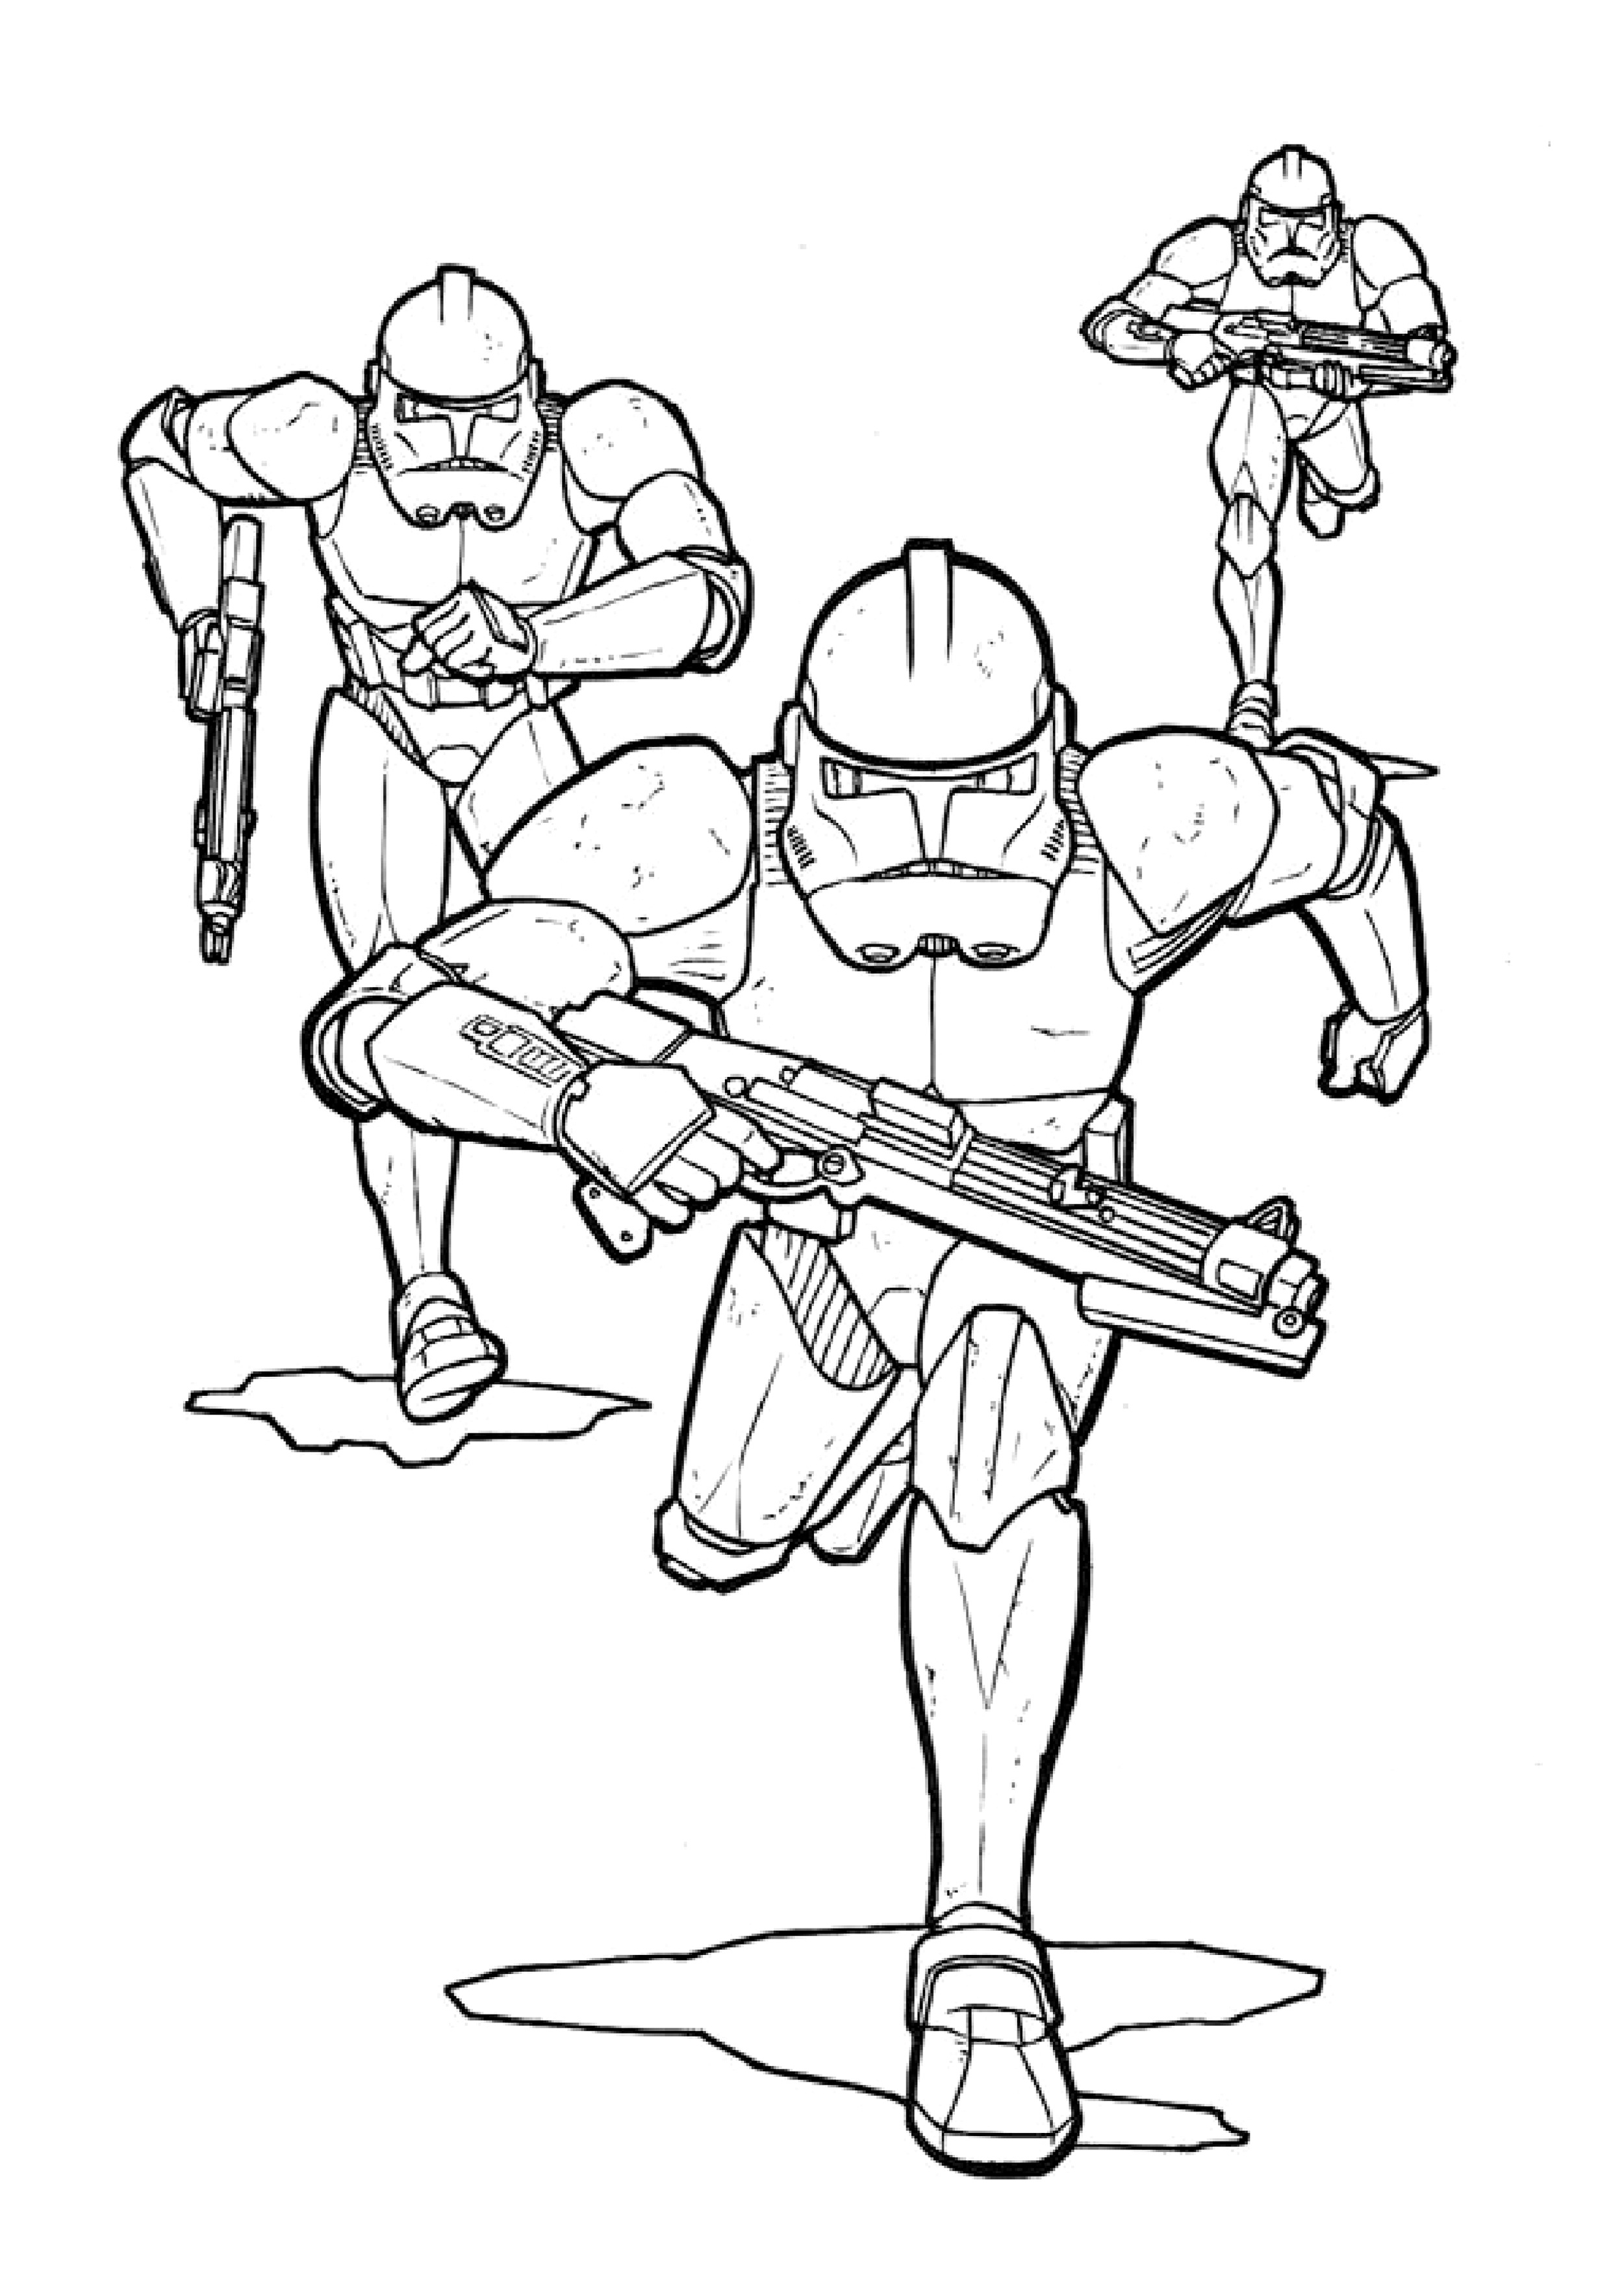 star wars coloring pictures star wars free to color for kids star wars kids coloring wars star pictures coloring